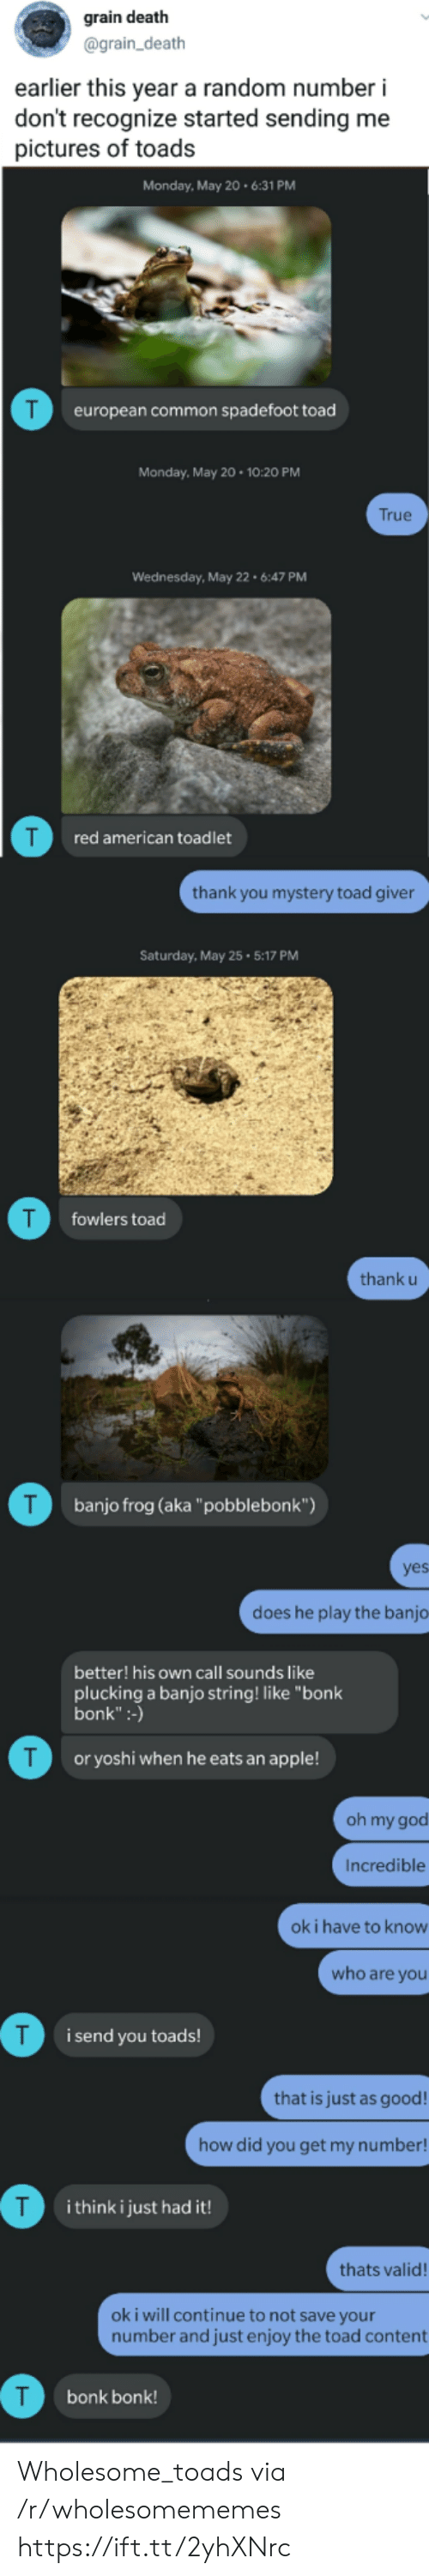 """Thank U: grain death  @grain_death  earlier this year a random number i  don't recognize started sending me  pictures of toads  Monday, May 20.6:31 PM  T  european common spadefoot toad  Monday, May 20 10:20 PM  True  Wednesday, May 22 6:47 PM  red american toadlet  thank you mystery toad giver  Saturday, May 25 5:17 PM  T  fowlers toad  thank u  T  banjo frog (aka""""pobblebonk"""")  yes  does he play the banjo  better! his own call sounds like  plucking a banjo string! like """"bonk  bonk"""":-)  T  or yoshi when he eats an apple!  oh my god  Incredible  ok i have to know  who are you  i send you toads!  that is just as good!  how did you get my number!  T  i think i just had it!  thats valid!  oki will continue to not save your  number and just enjoy the toad content  bonk bonk! Wholesome_toads via /r/wholesomememes https://ift.tt/2yhXNrc"""